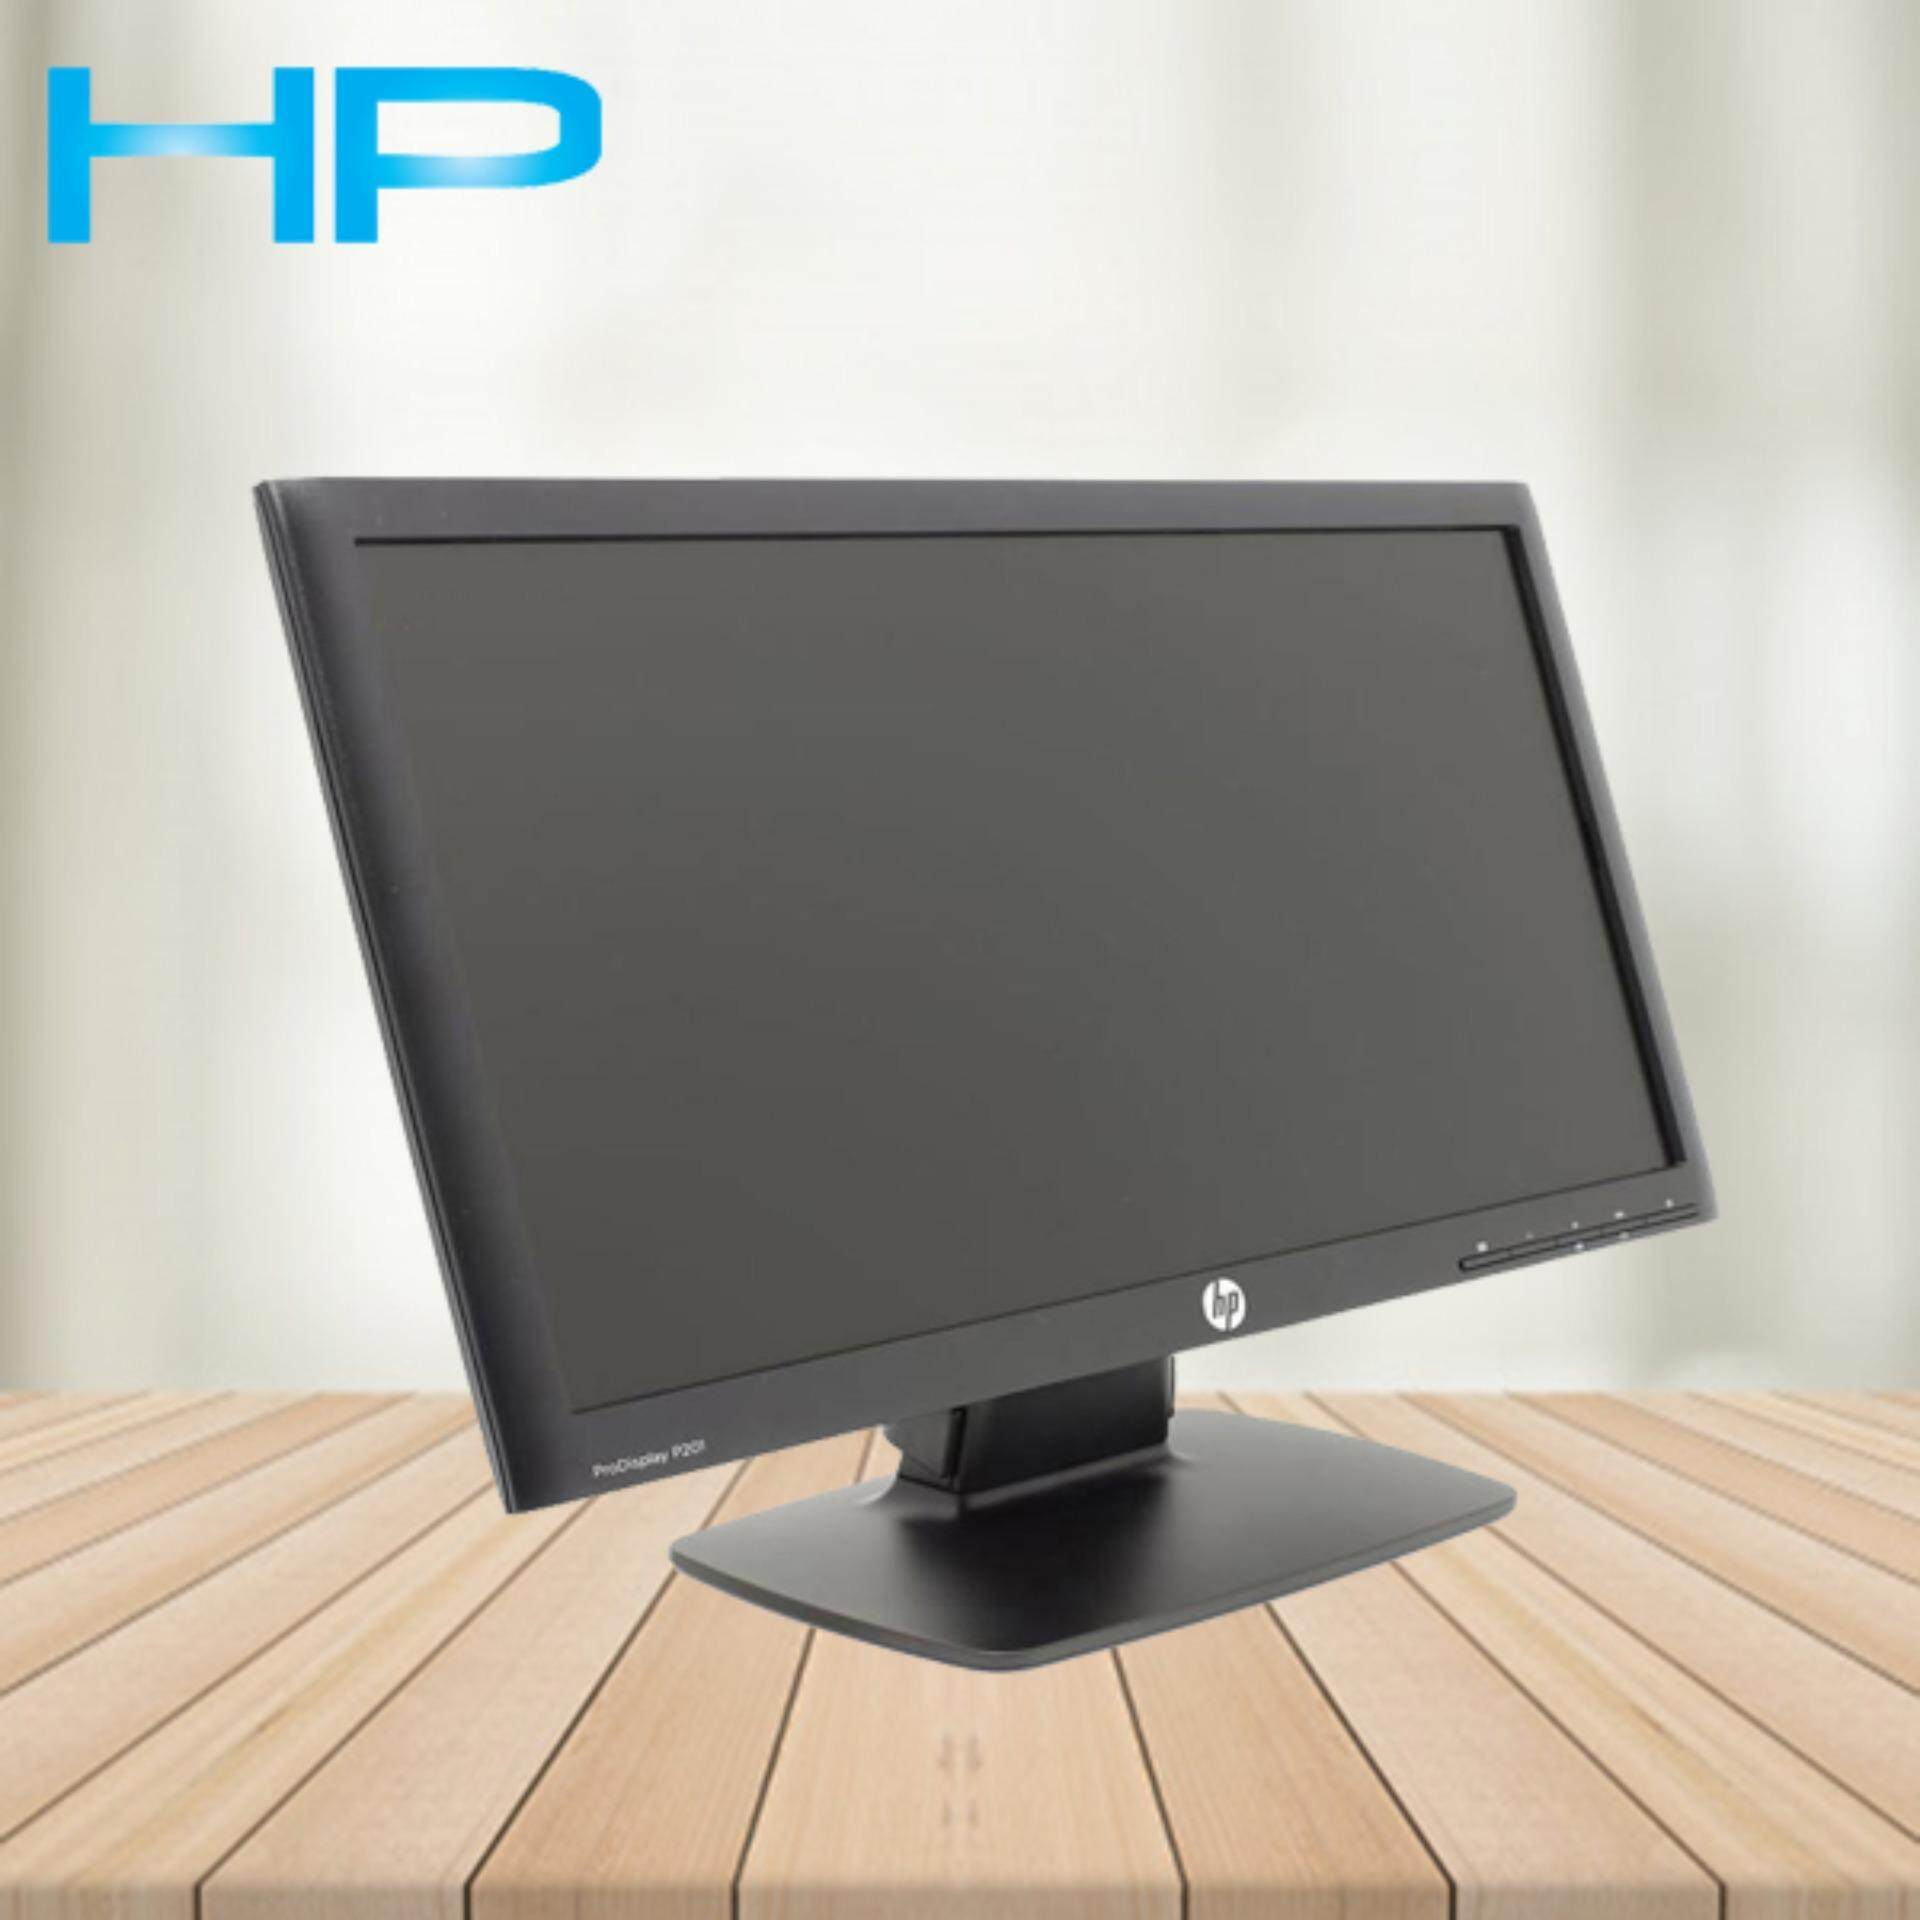 HP PRO-DISPLAY 20 INCH HD+ LED SCREEN ANTIGLARE [1 YEAR WARRANTY] Malaysia